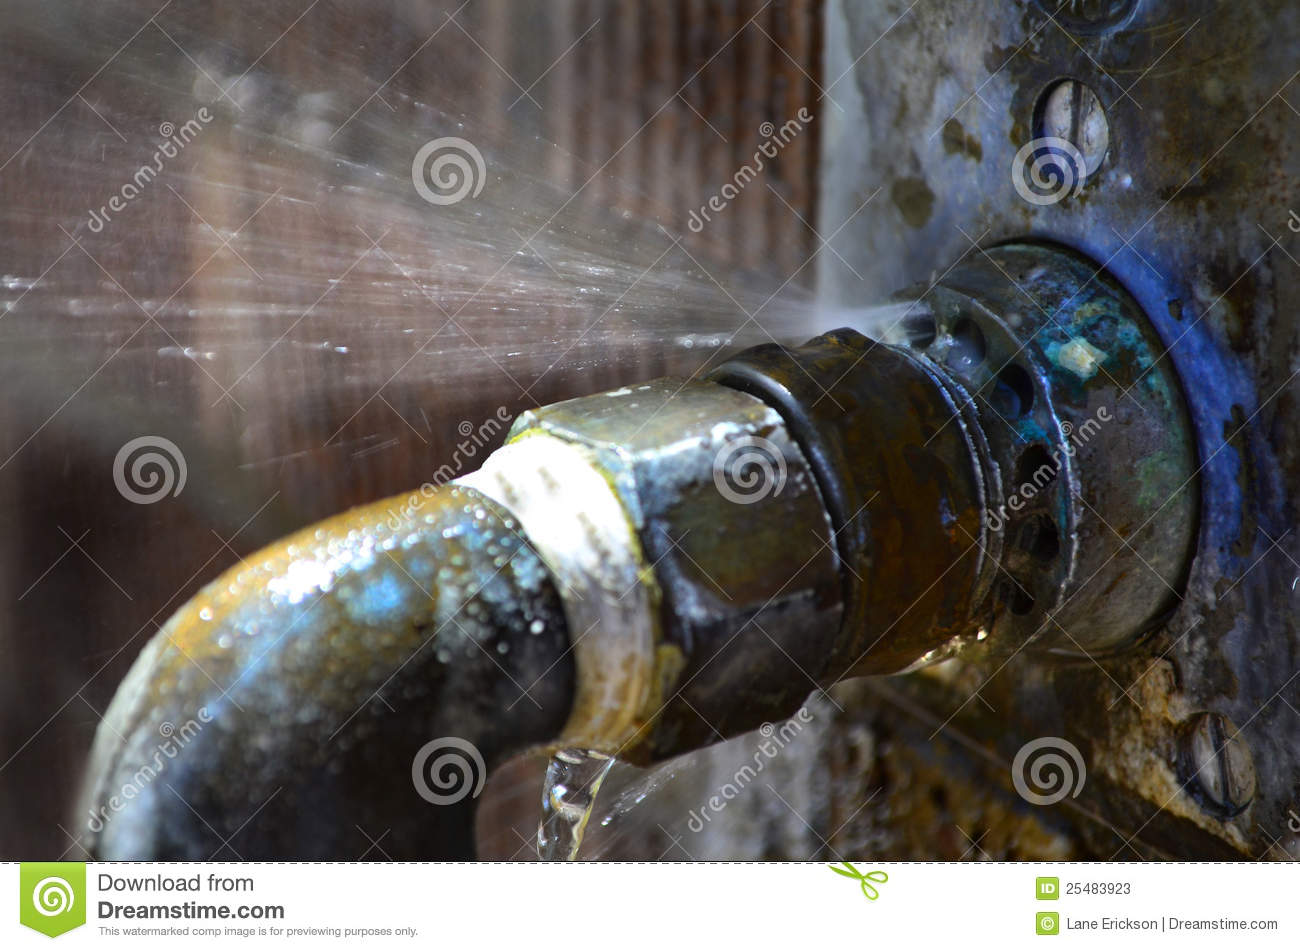 Download Old Leaky Pipes stock image. Image of losing, flowing - 25483923